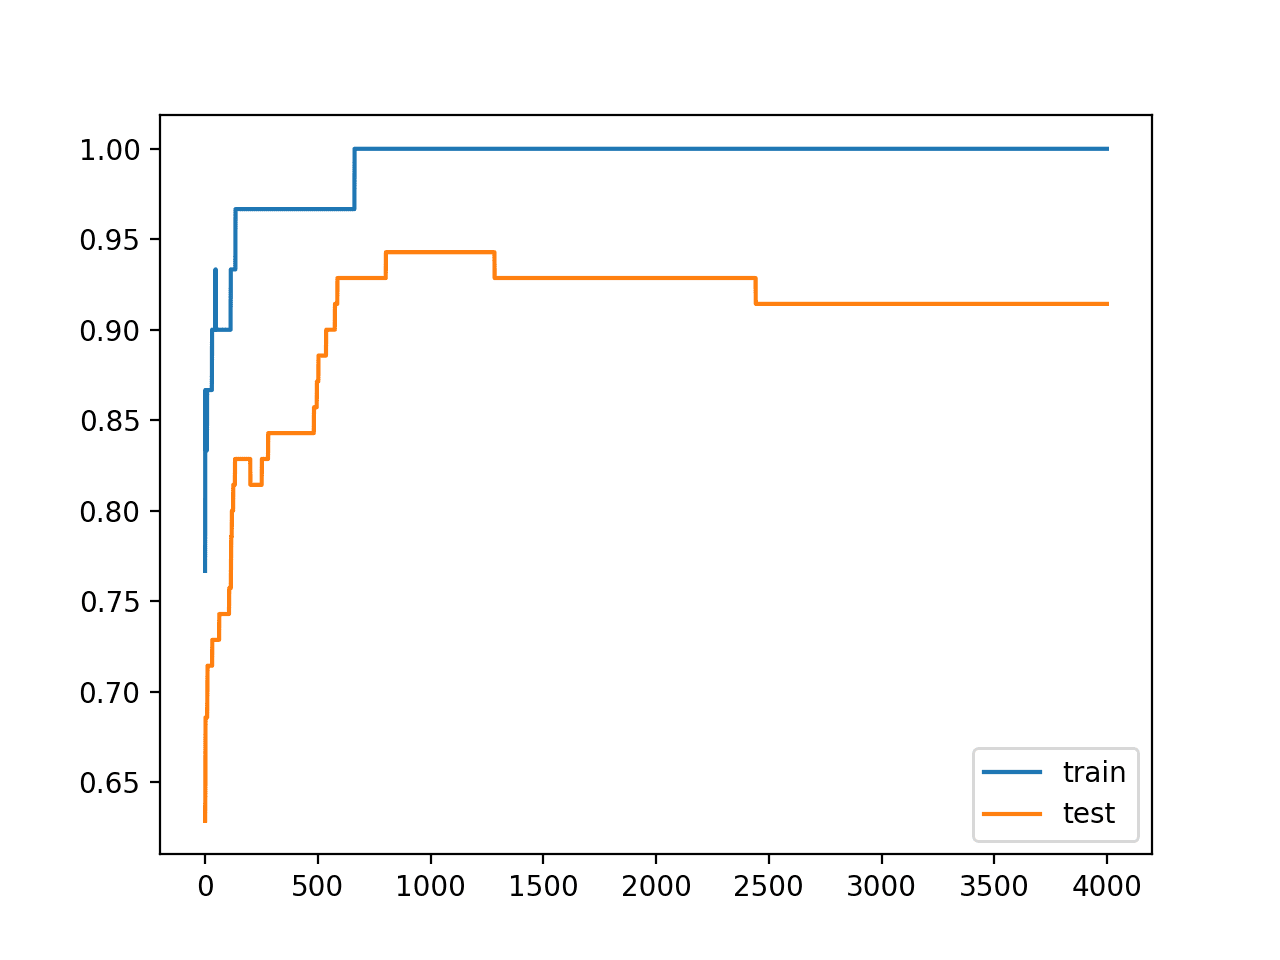 Line Plots of Accuracy on Train and Test Datasets While Training